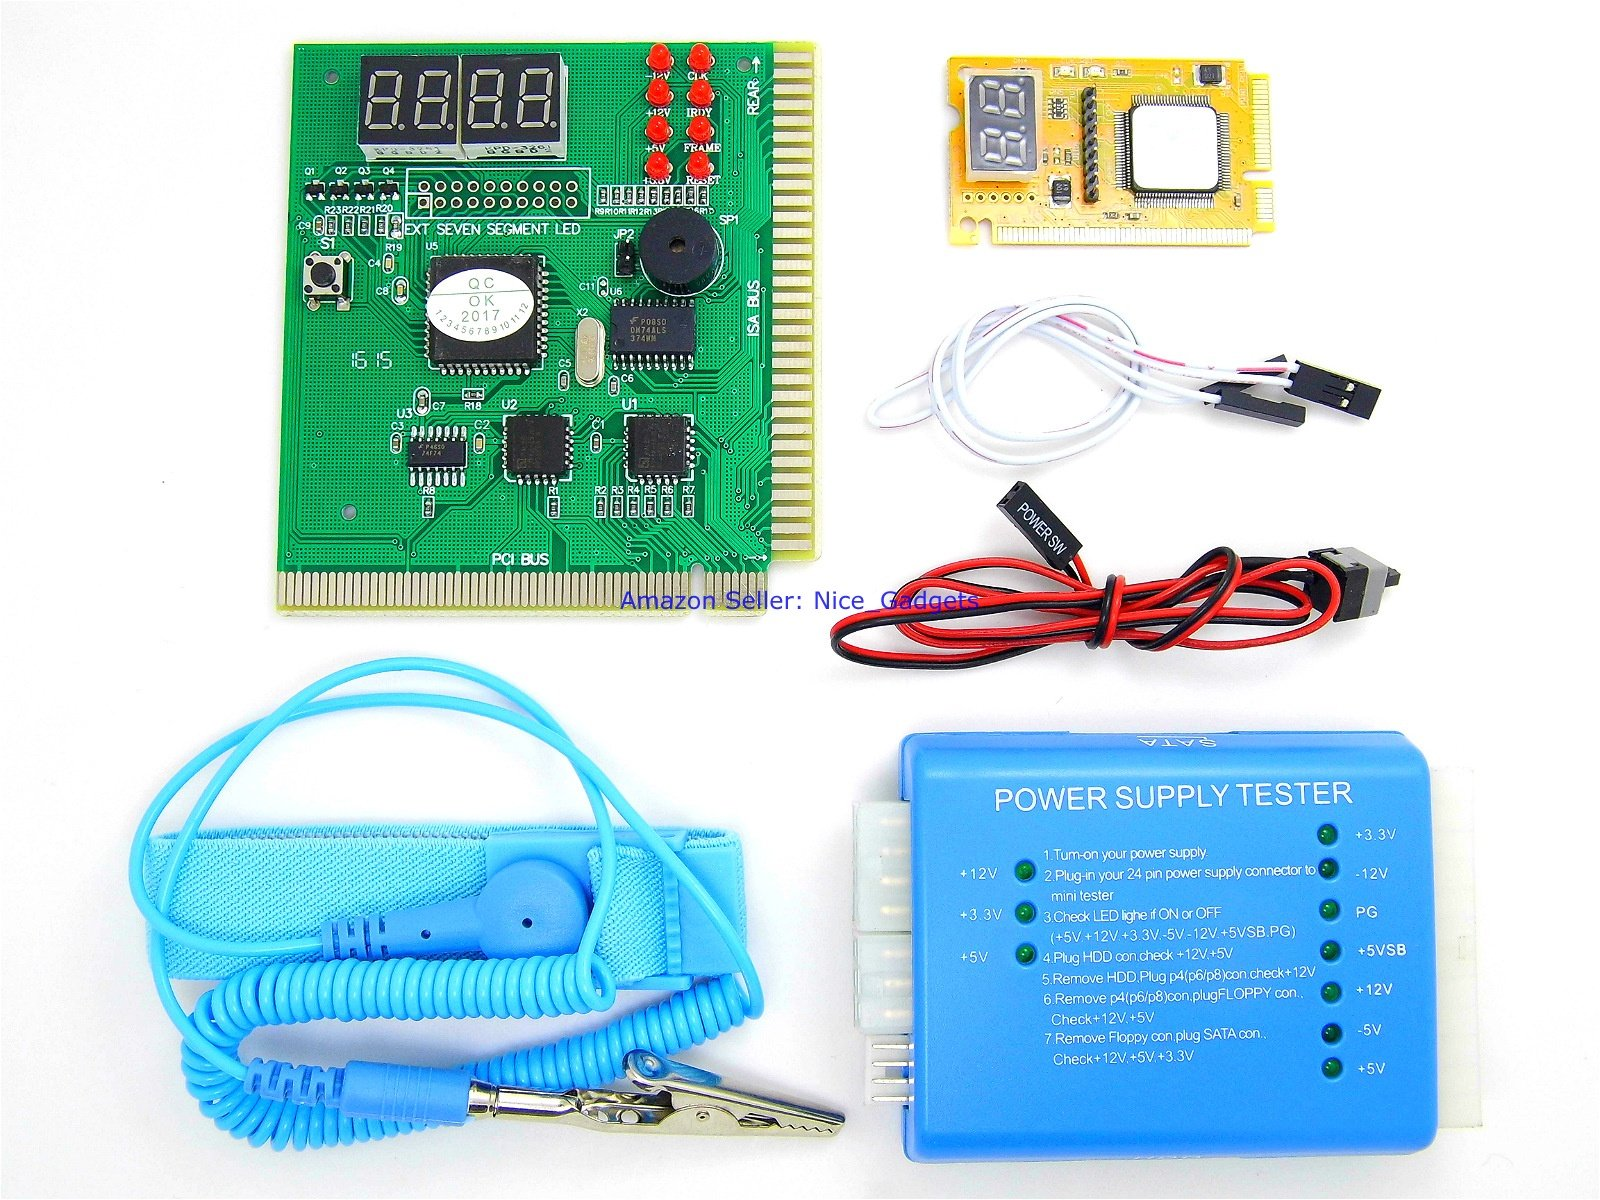 New Desktop PC and Laptop Computer Motherboard Power Diagnostic Analyzer Post Test Starter Kit by PcTestCard